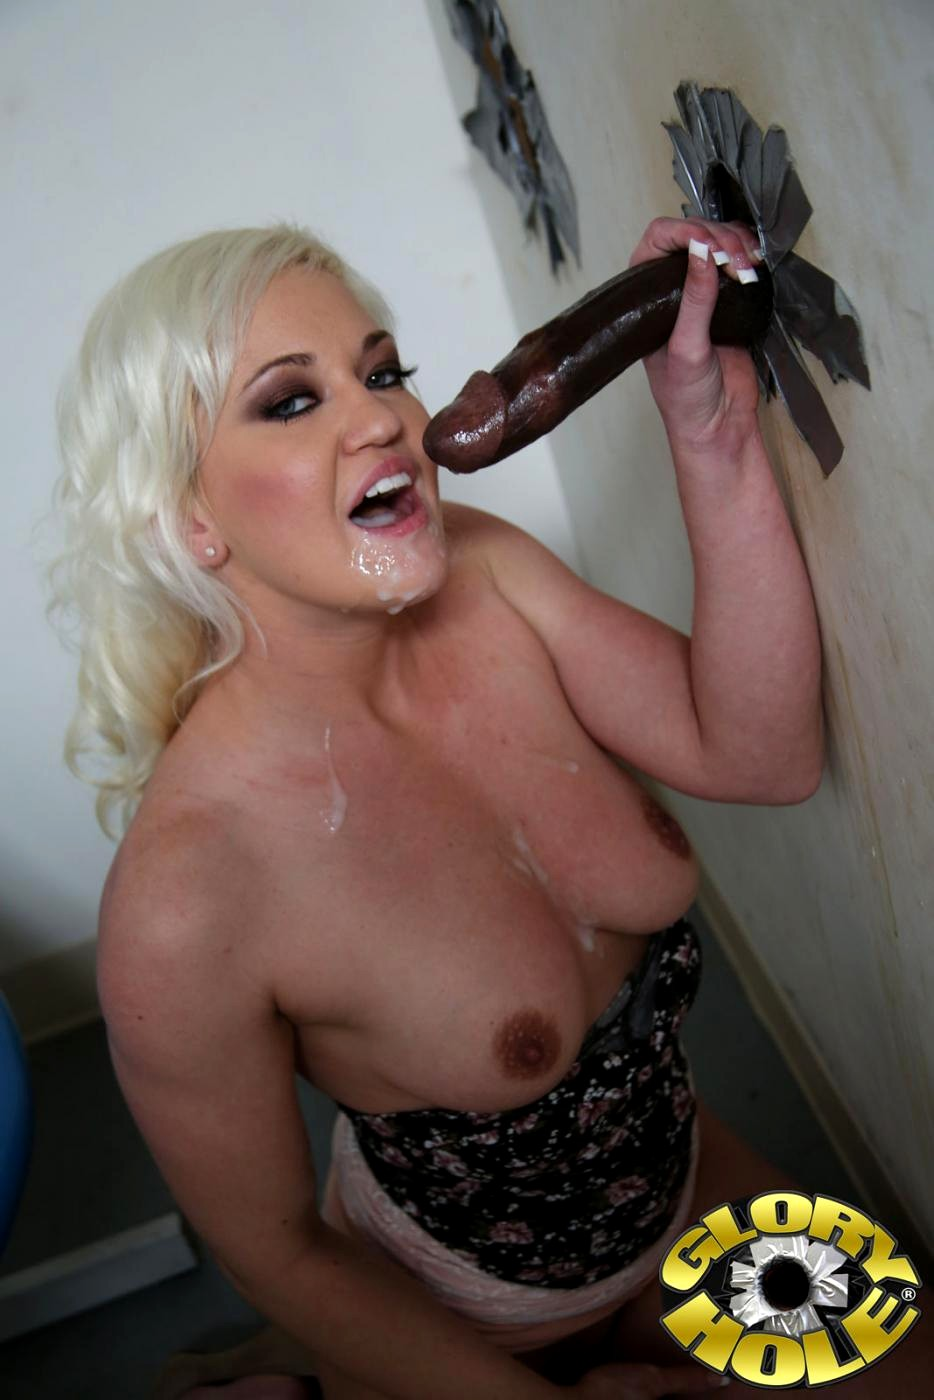 glory hole porn norsk porno side